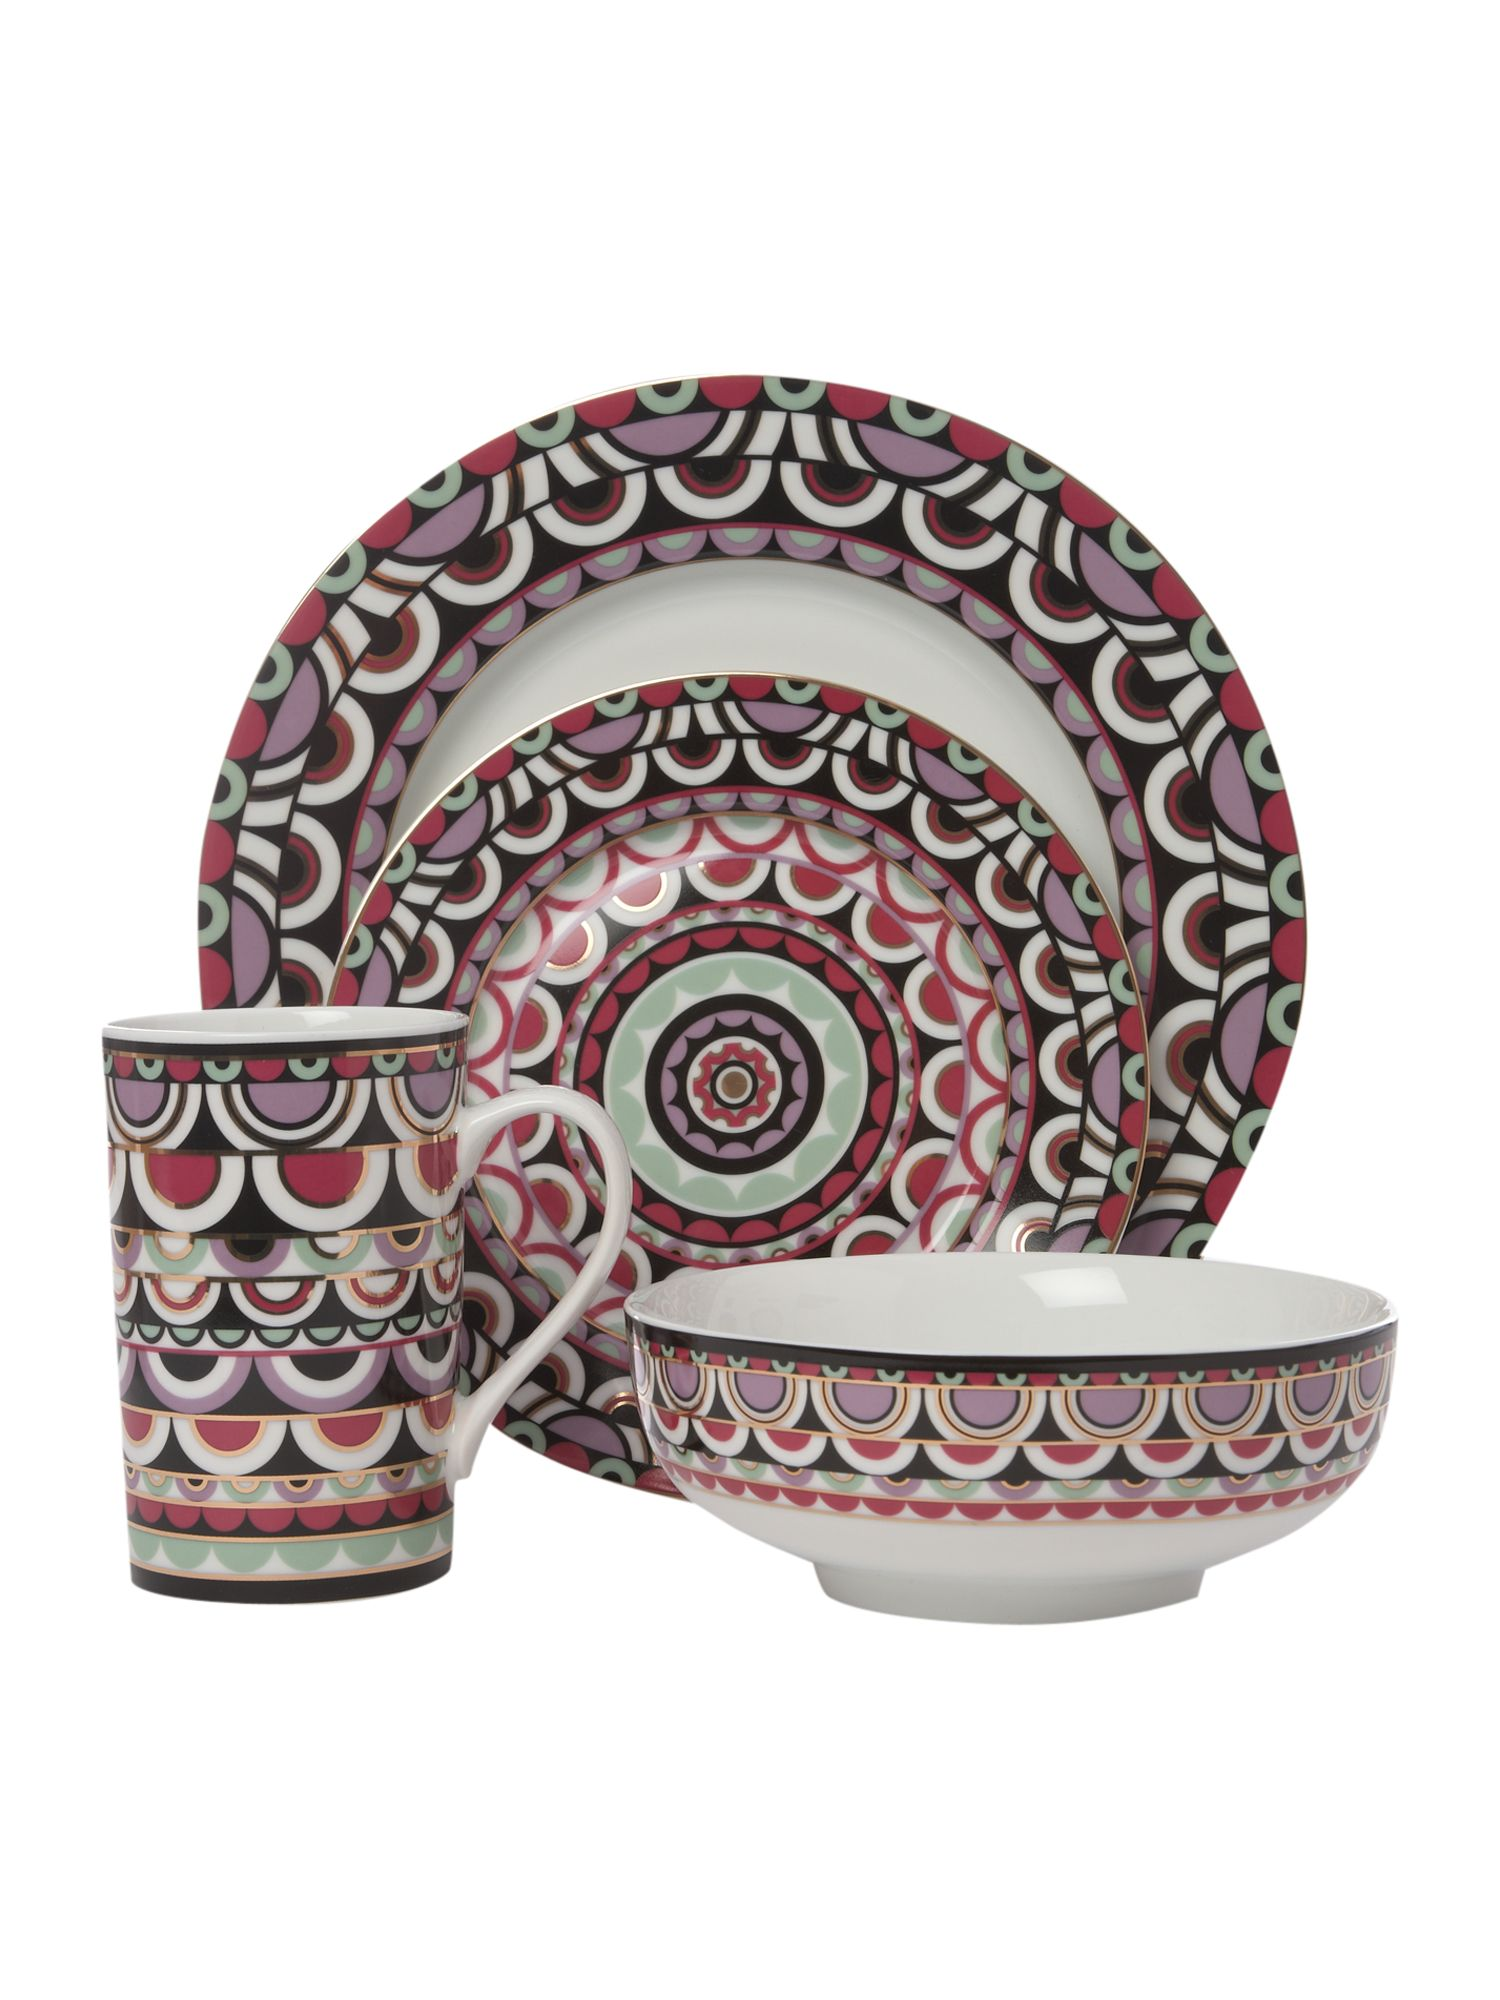 Persia Jewels 16 piece dinner set